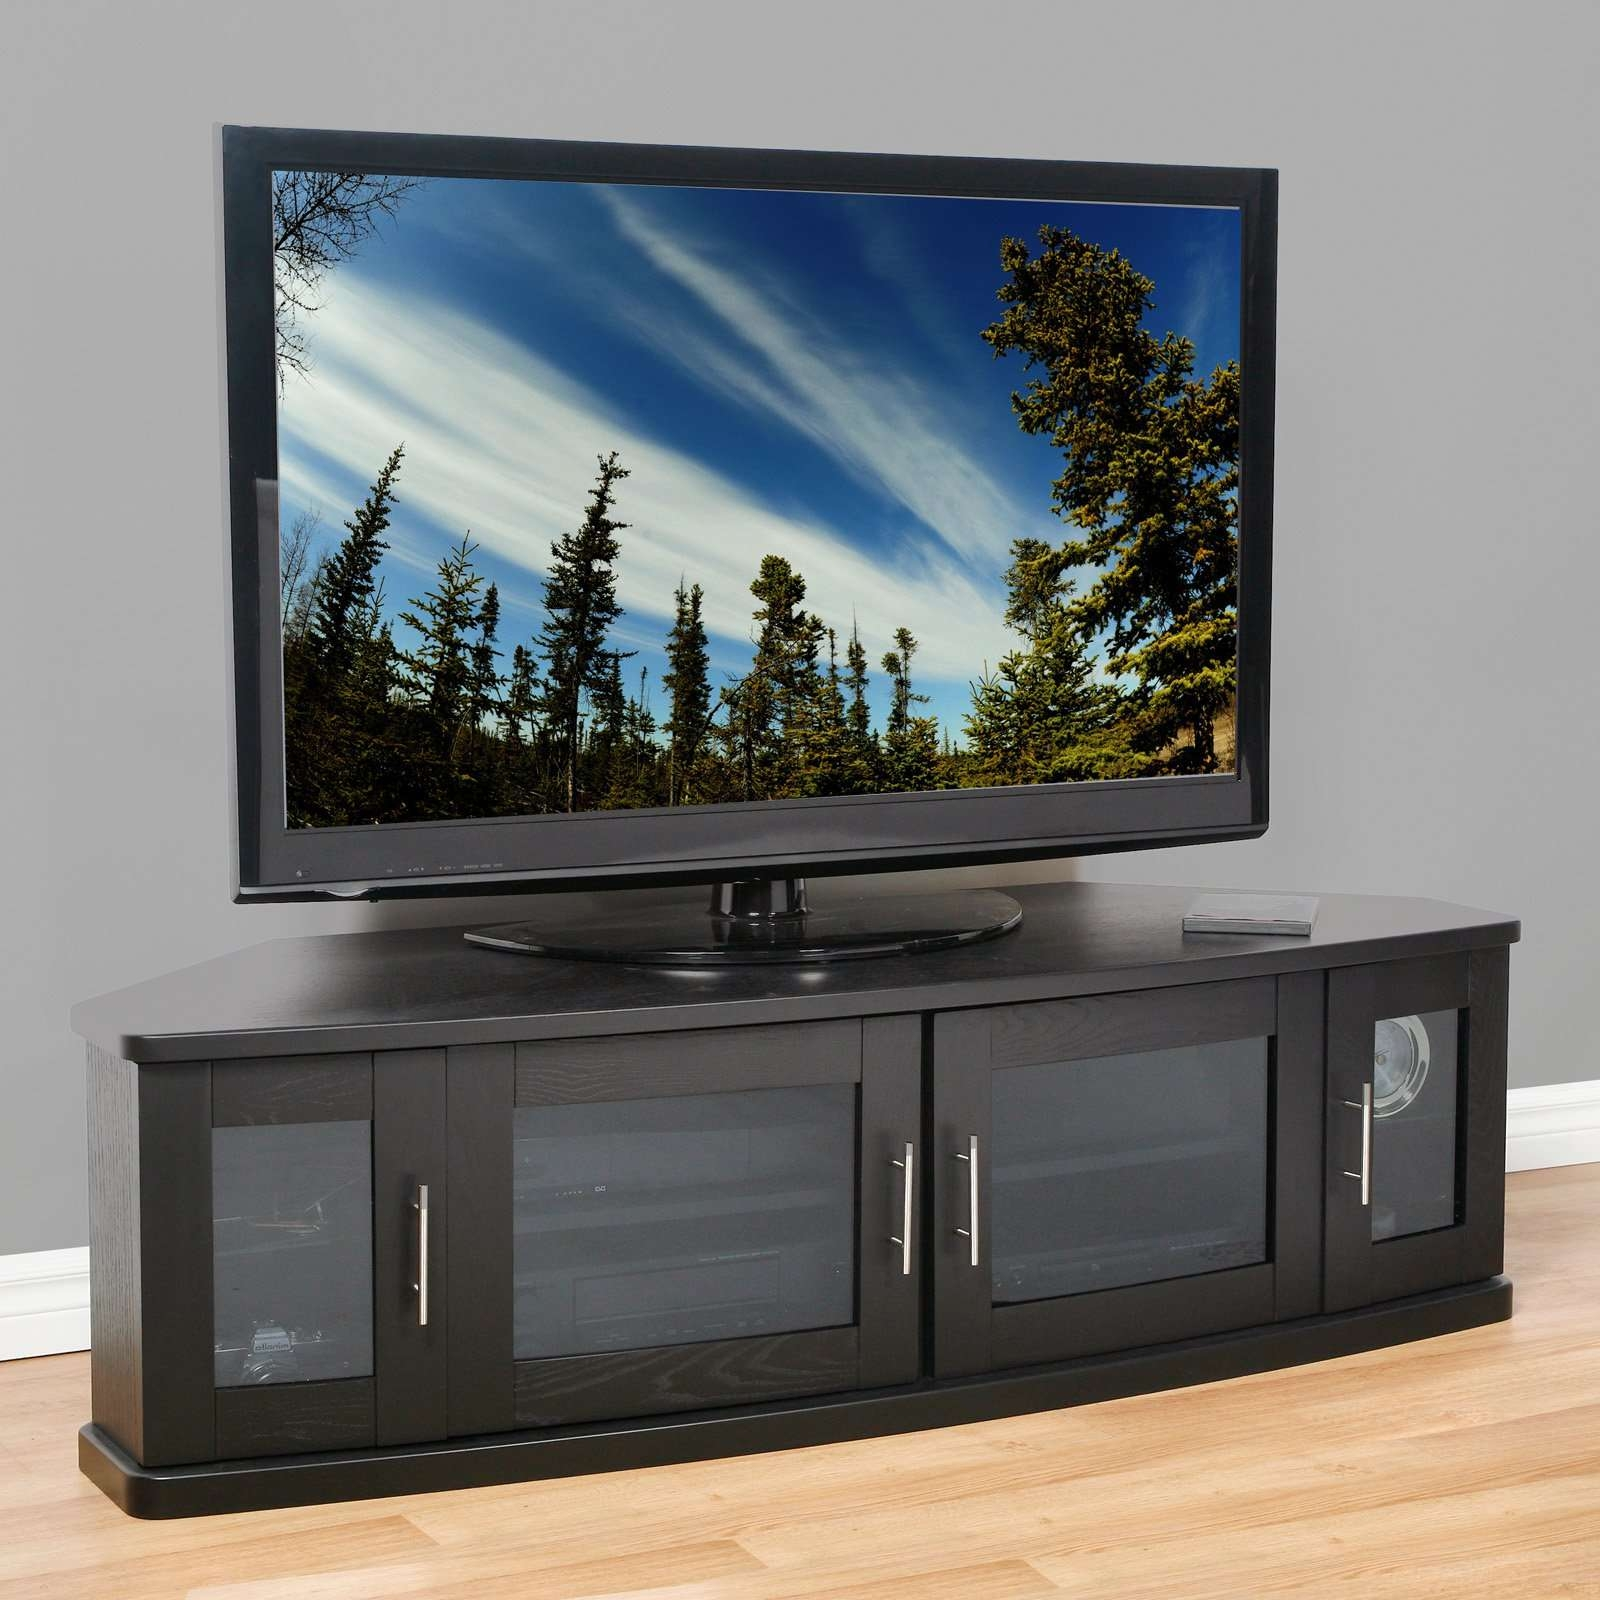 Large Corner Tv Cabinet With 4 Glass Doors And Silver Handle Regarding Glass Tv Cabinets With Doors (View 7 of 20)